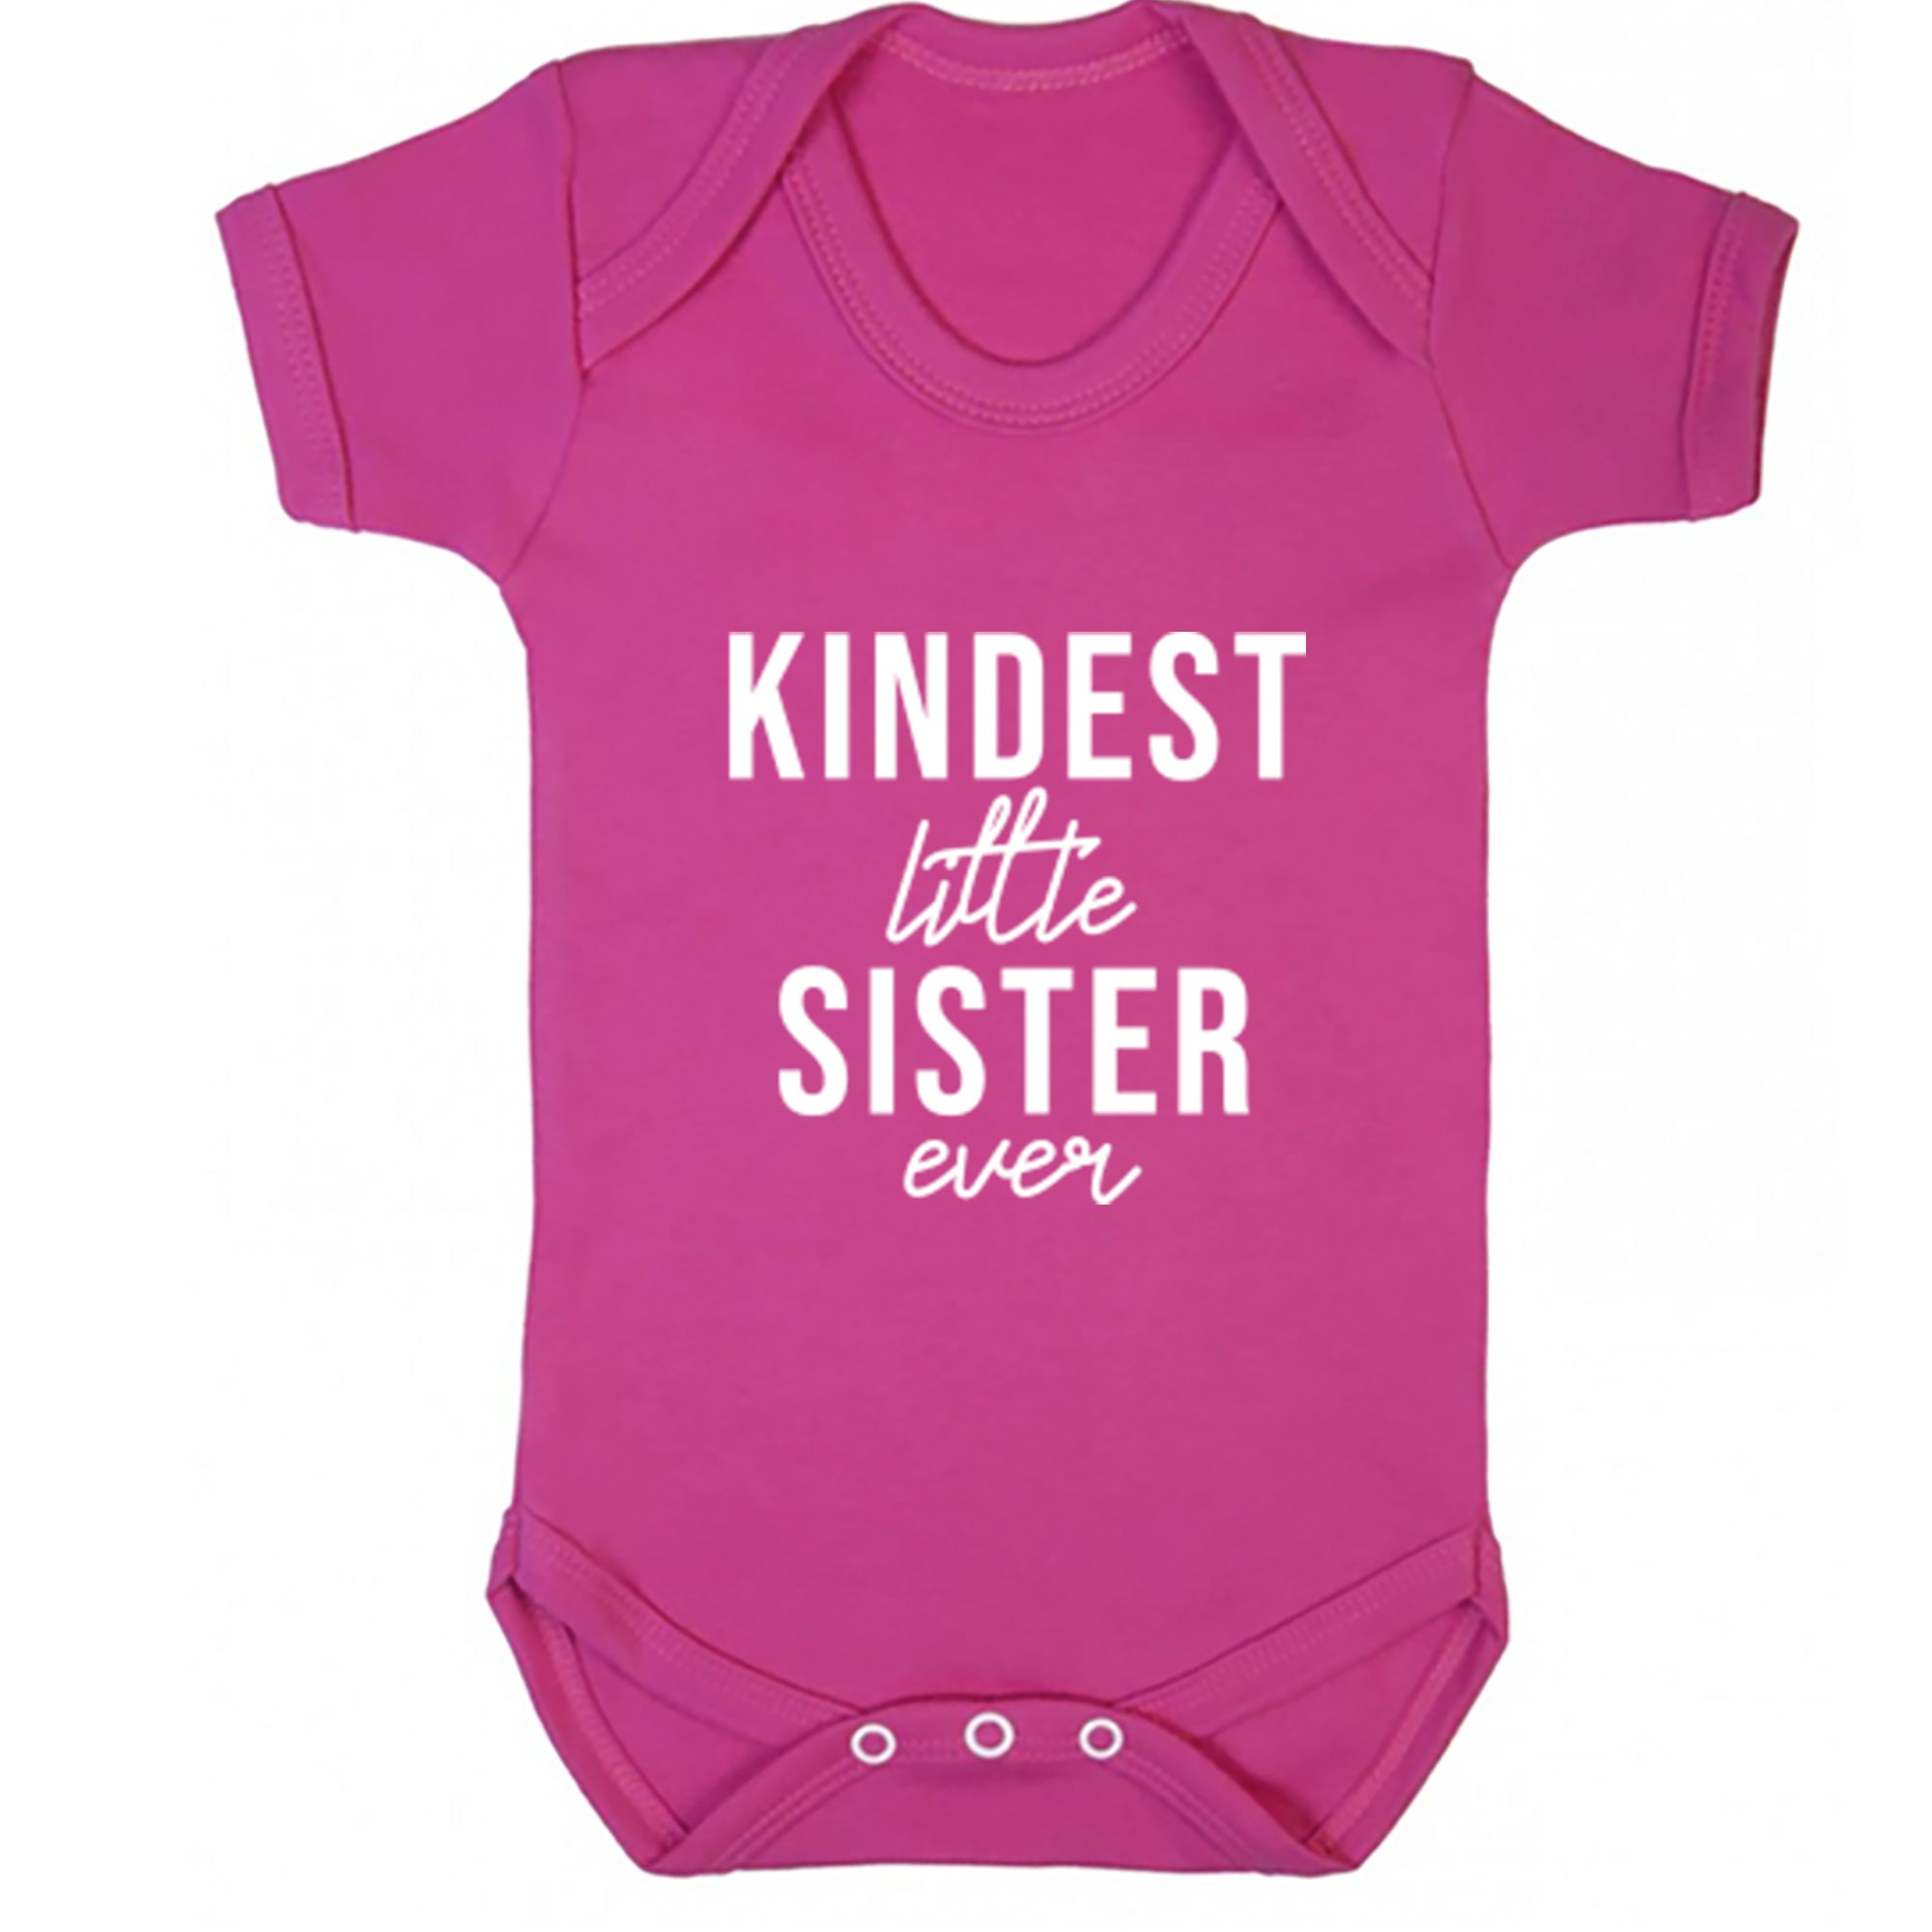 Kindest Little Sister Ever Baby Vest S0507 - Illustrated Identity Ltd.